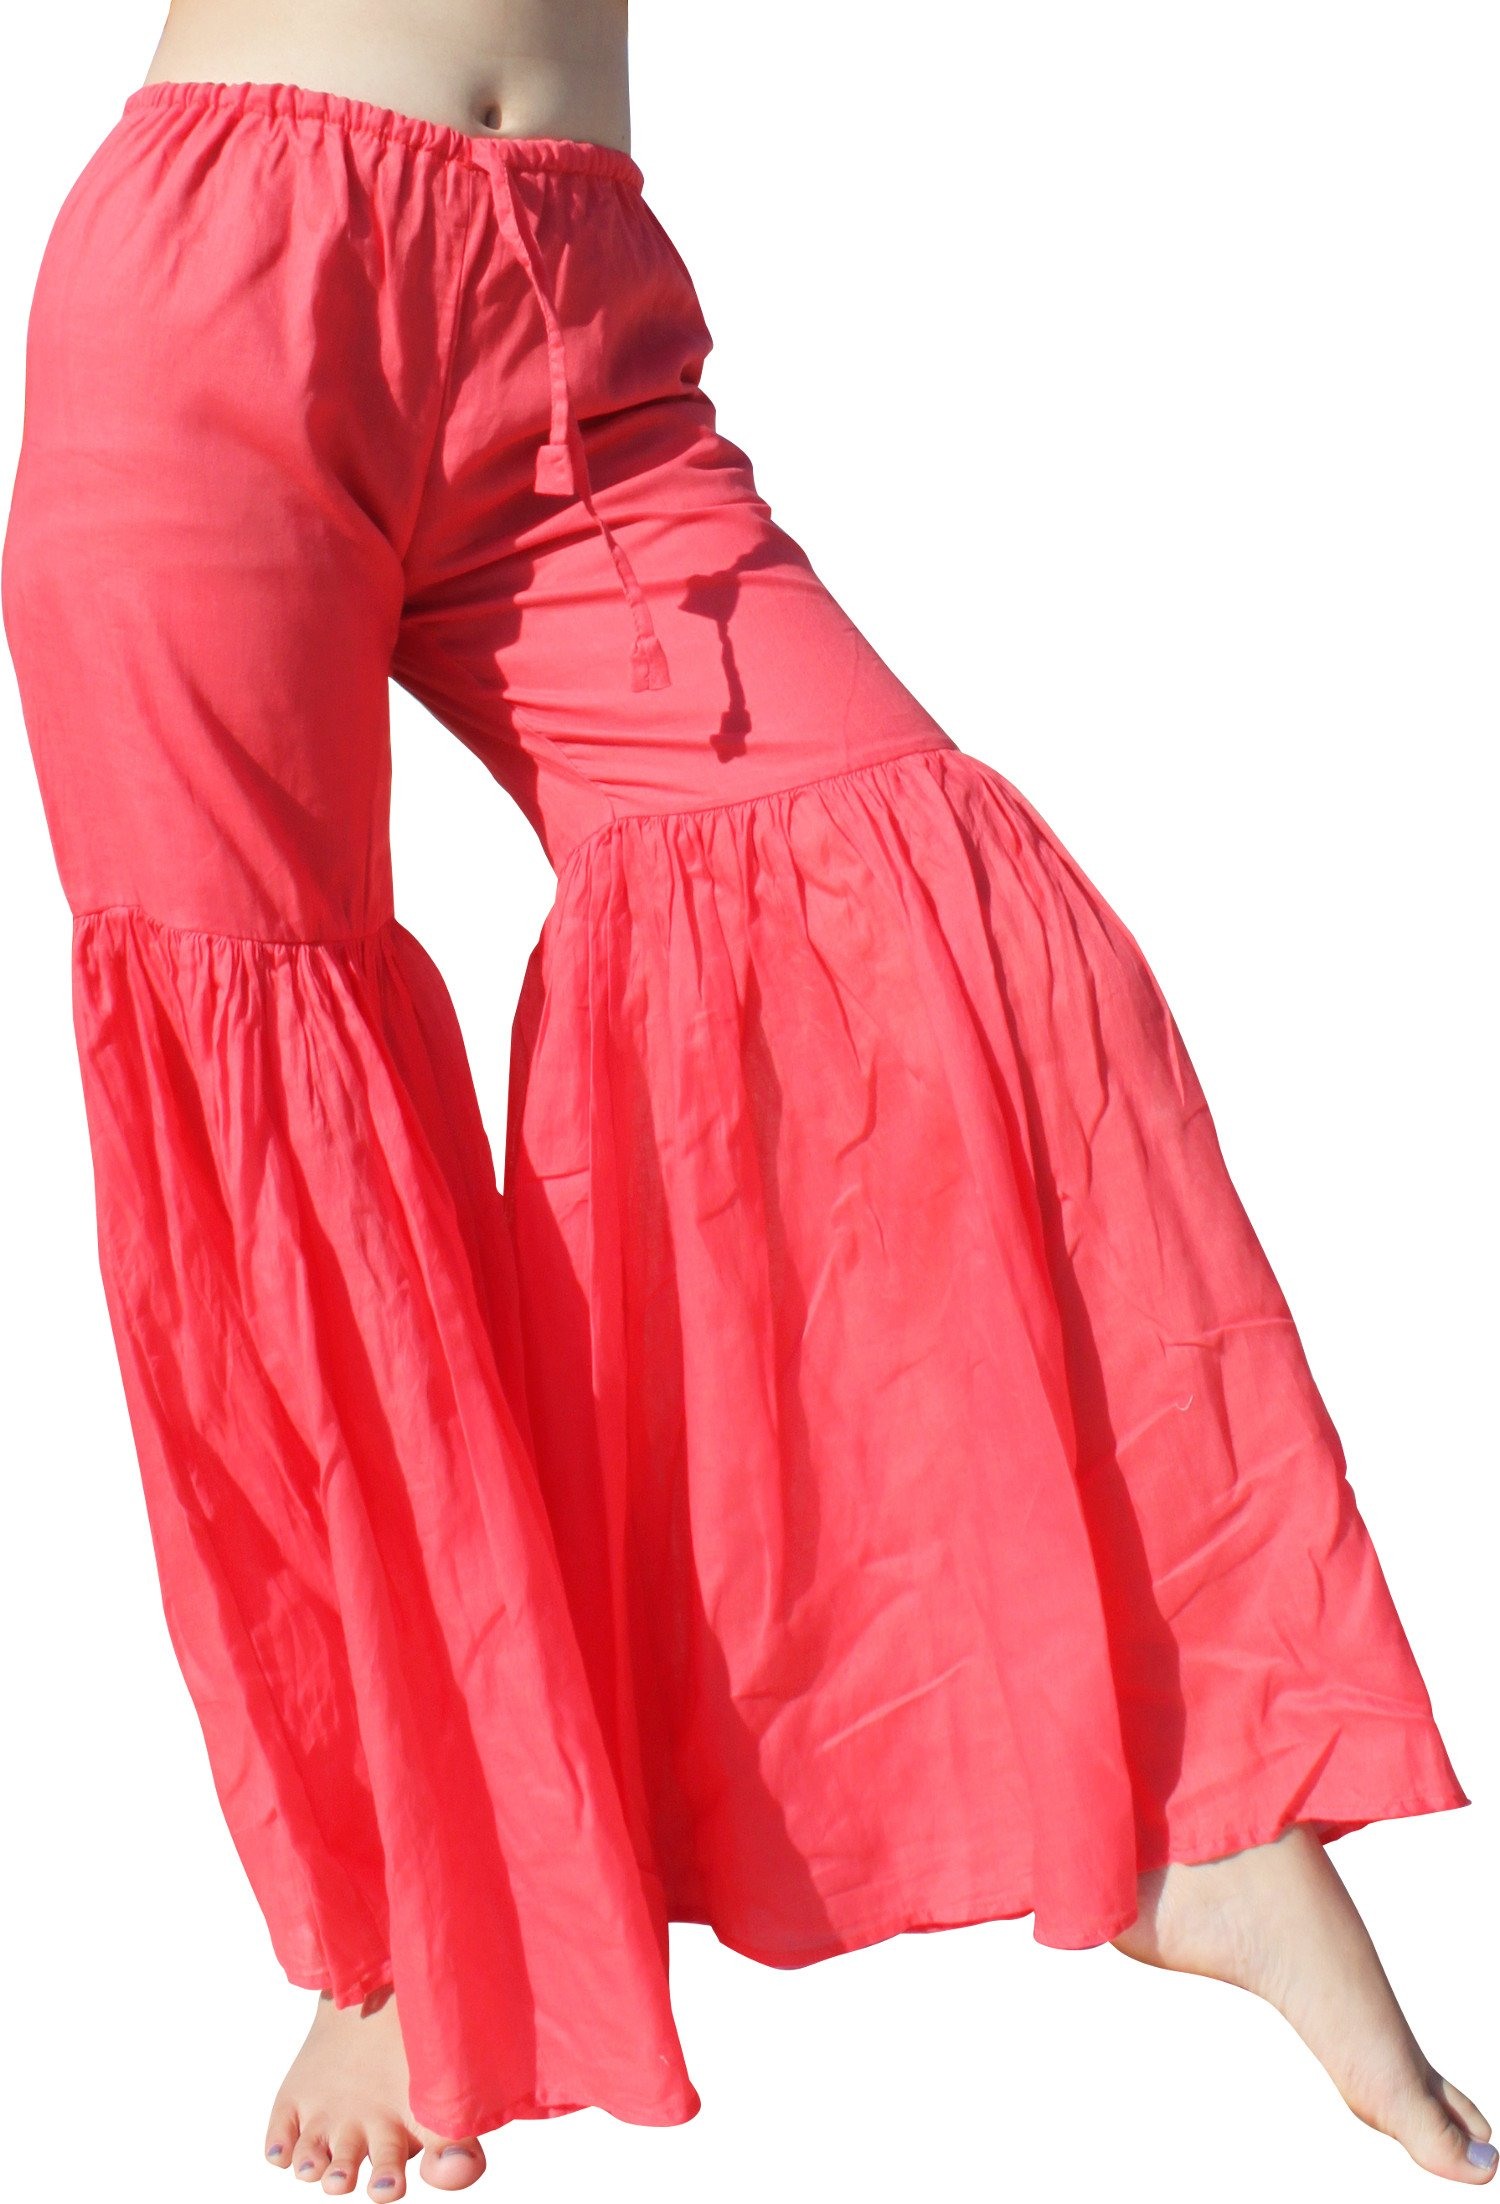 Raan Pah Muang RaanPahMuang Brand Wide Lower Leg Flared Light Cotton Stepped Pants Baggy Cut, Small, Rose Pink by Raan Pah Muang